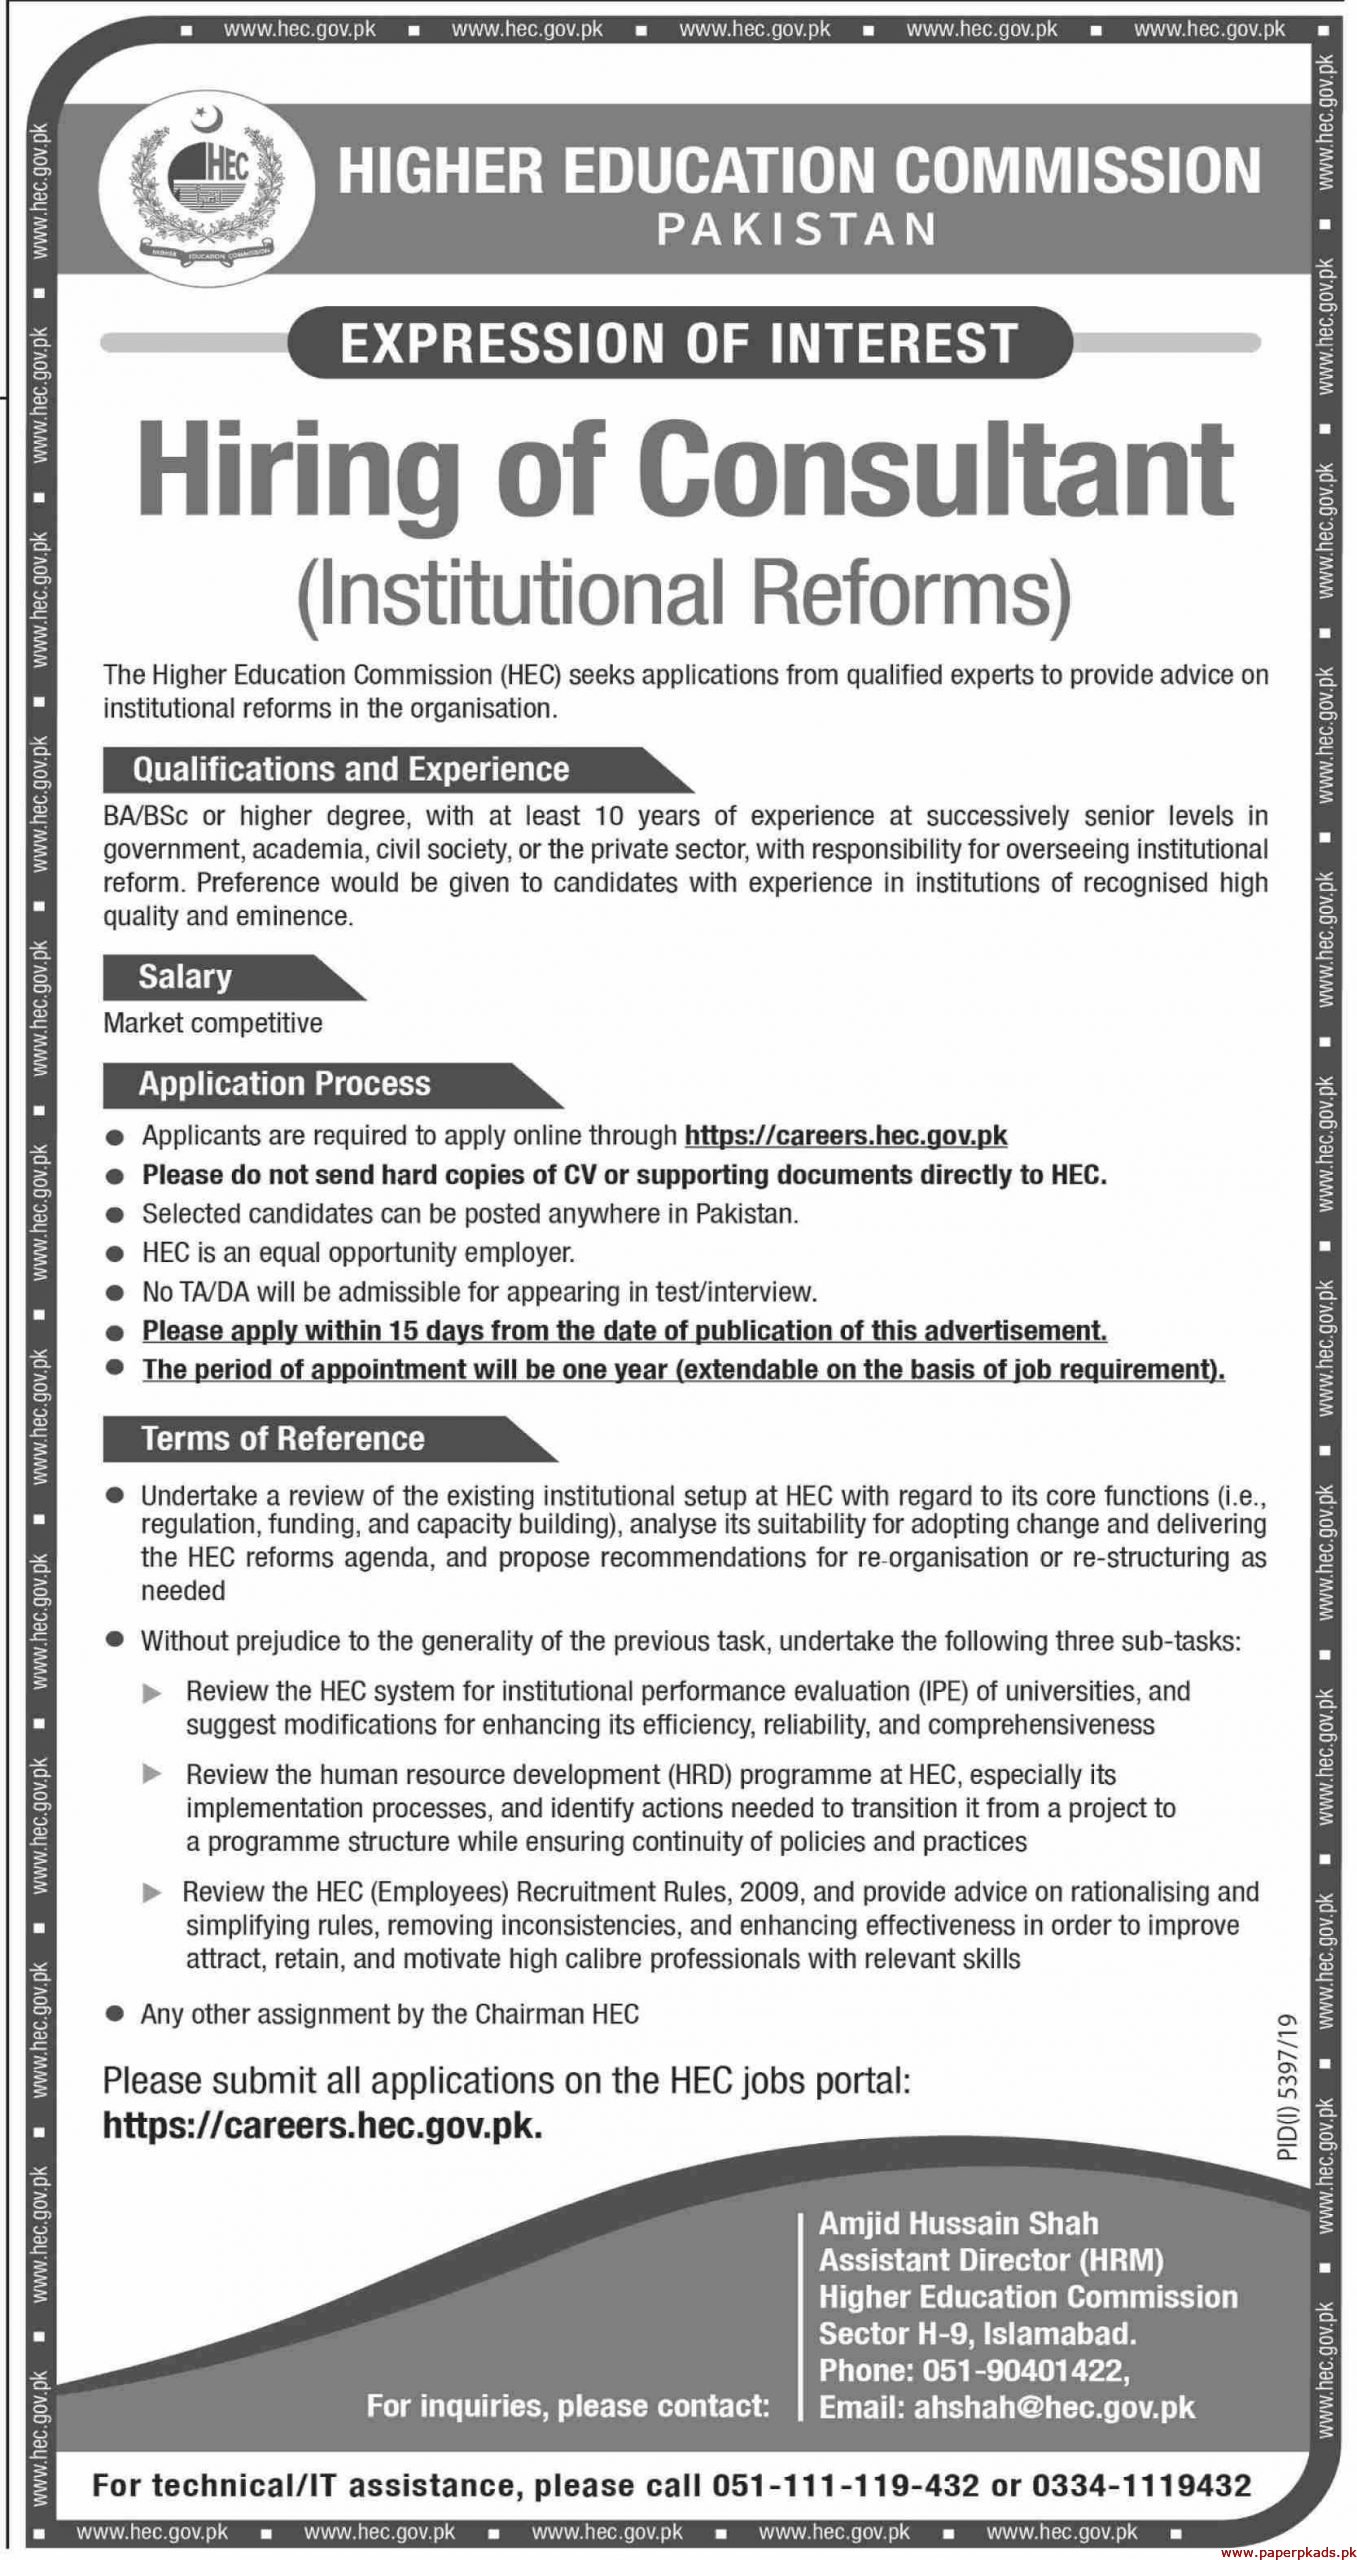 Higher Education Commission Pakistan Jobs 2020 Latest